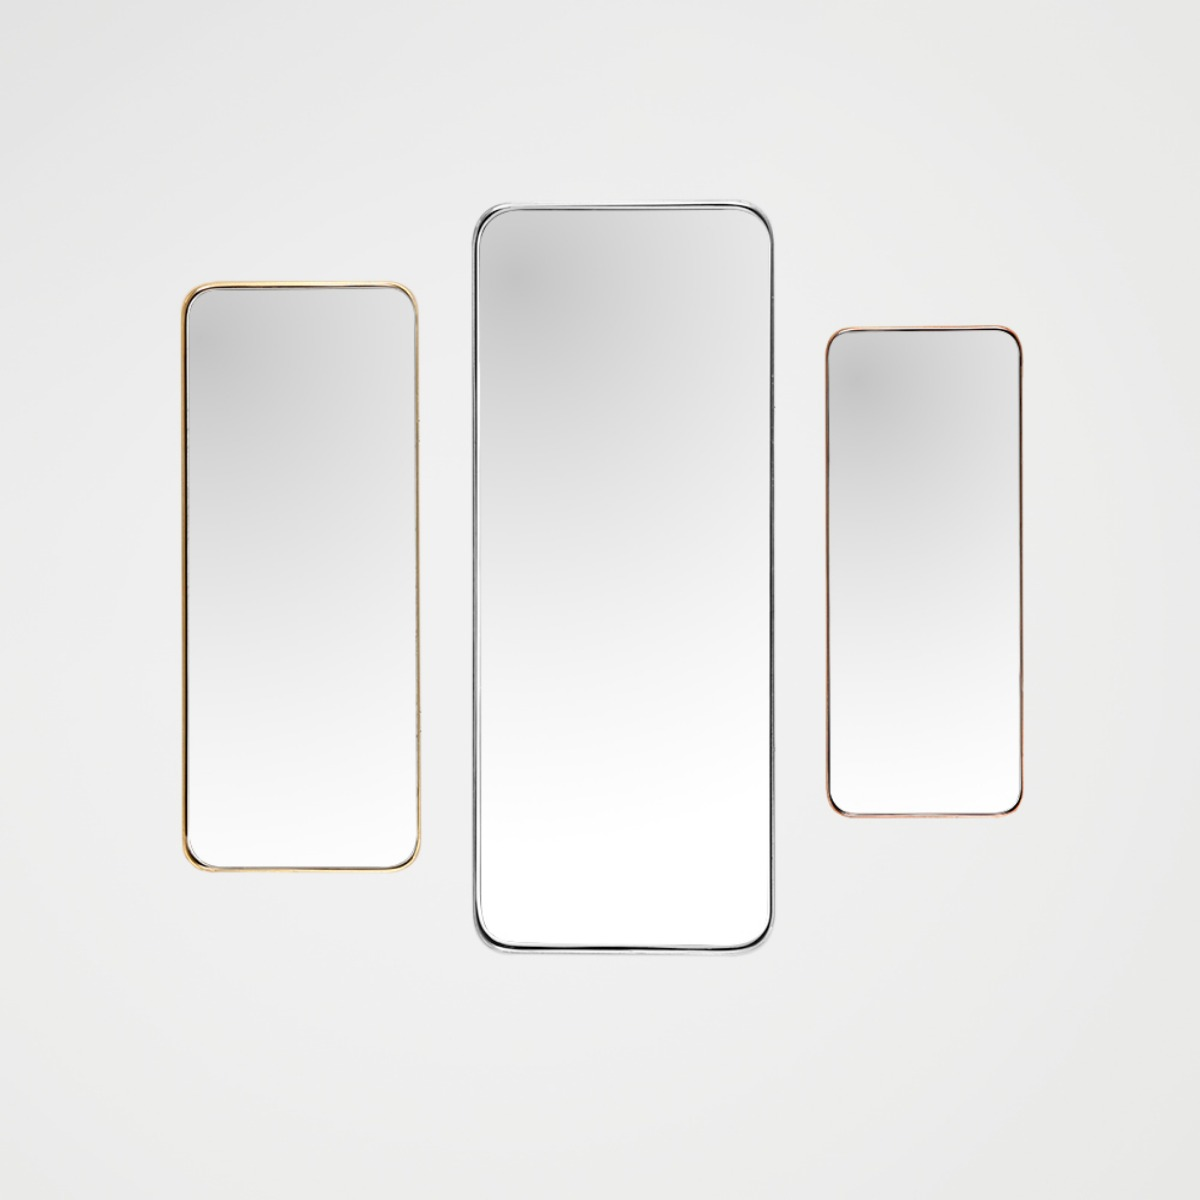 Wall Mirror 4698 (FRO-4698)